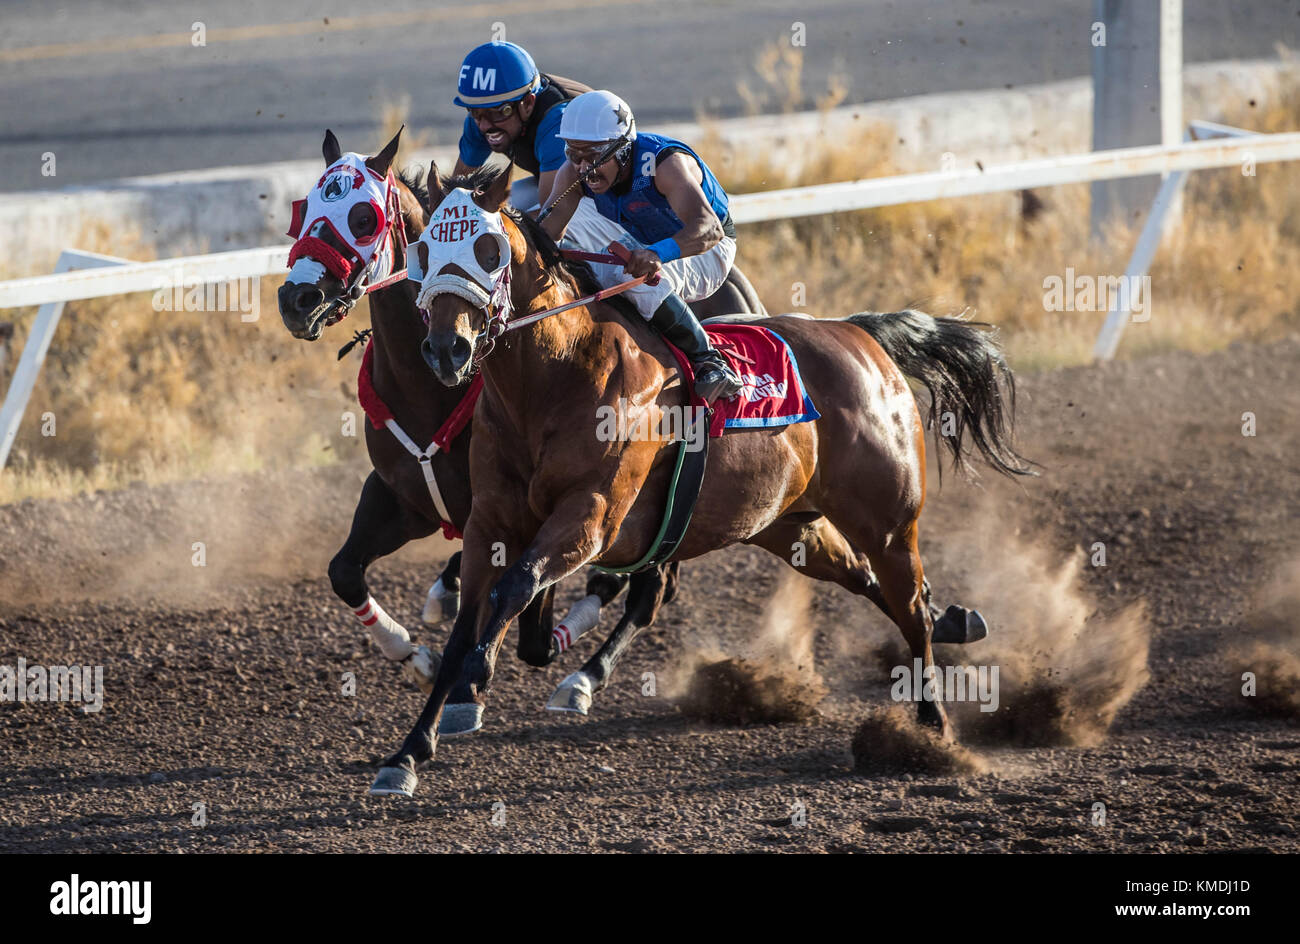 Horse racing at sunset at Hippodrome of Hermosillo, Sonora Mexico. Mexican guys trying to win the race. (Photo: - Stock Image